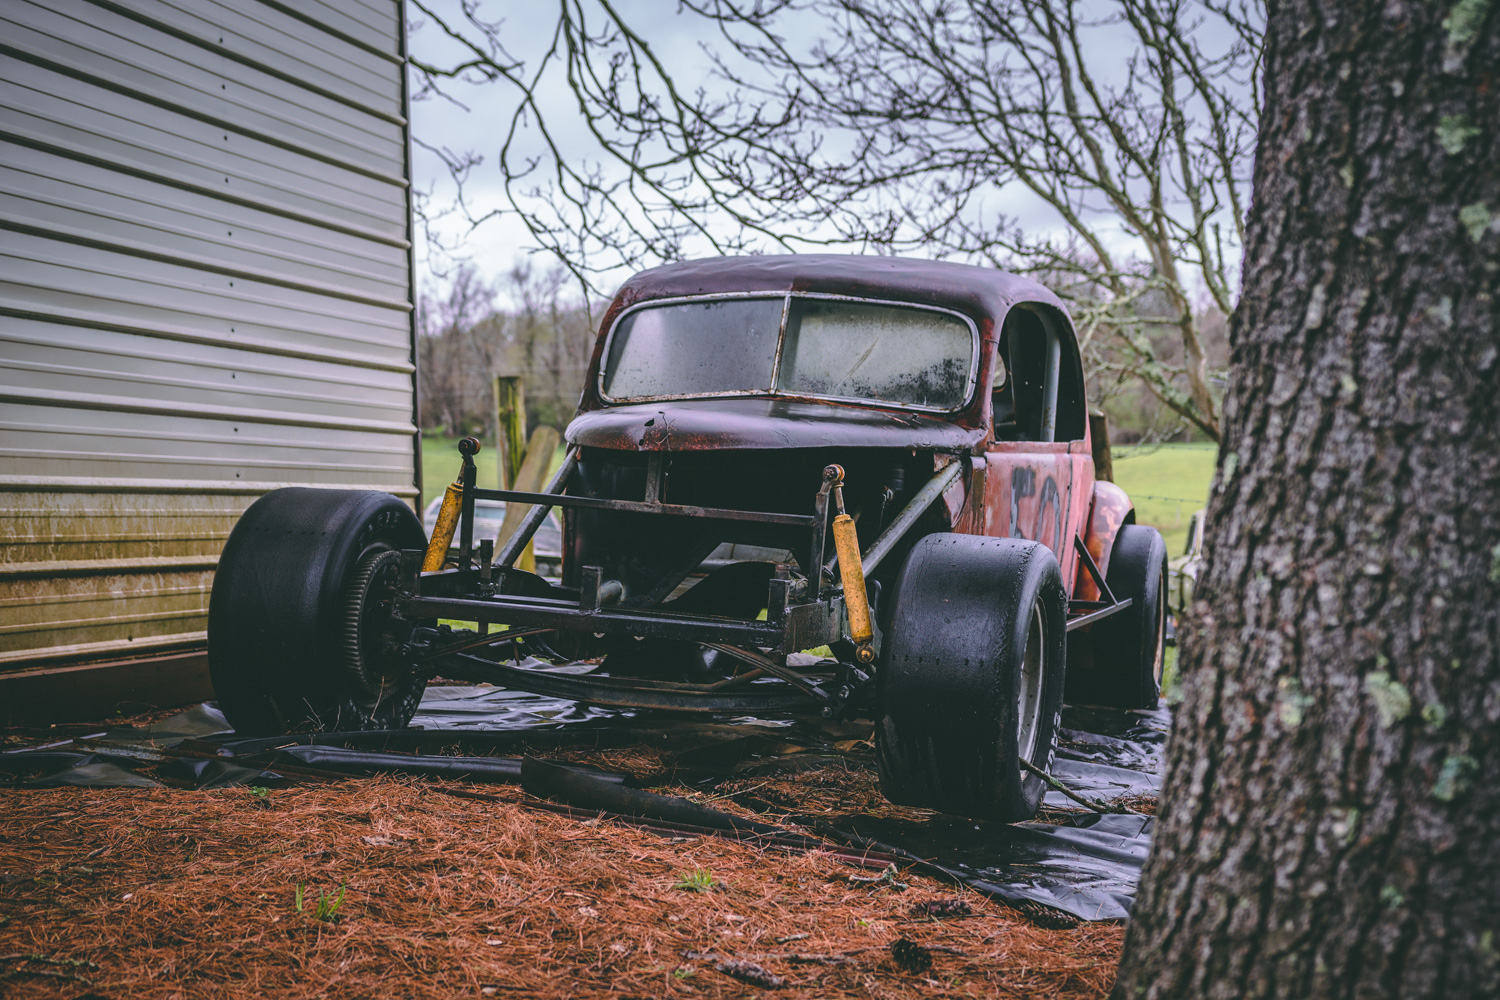 Barn Find Hunter stock car max wedge